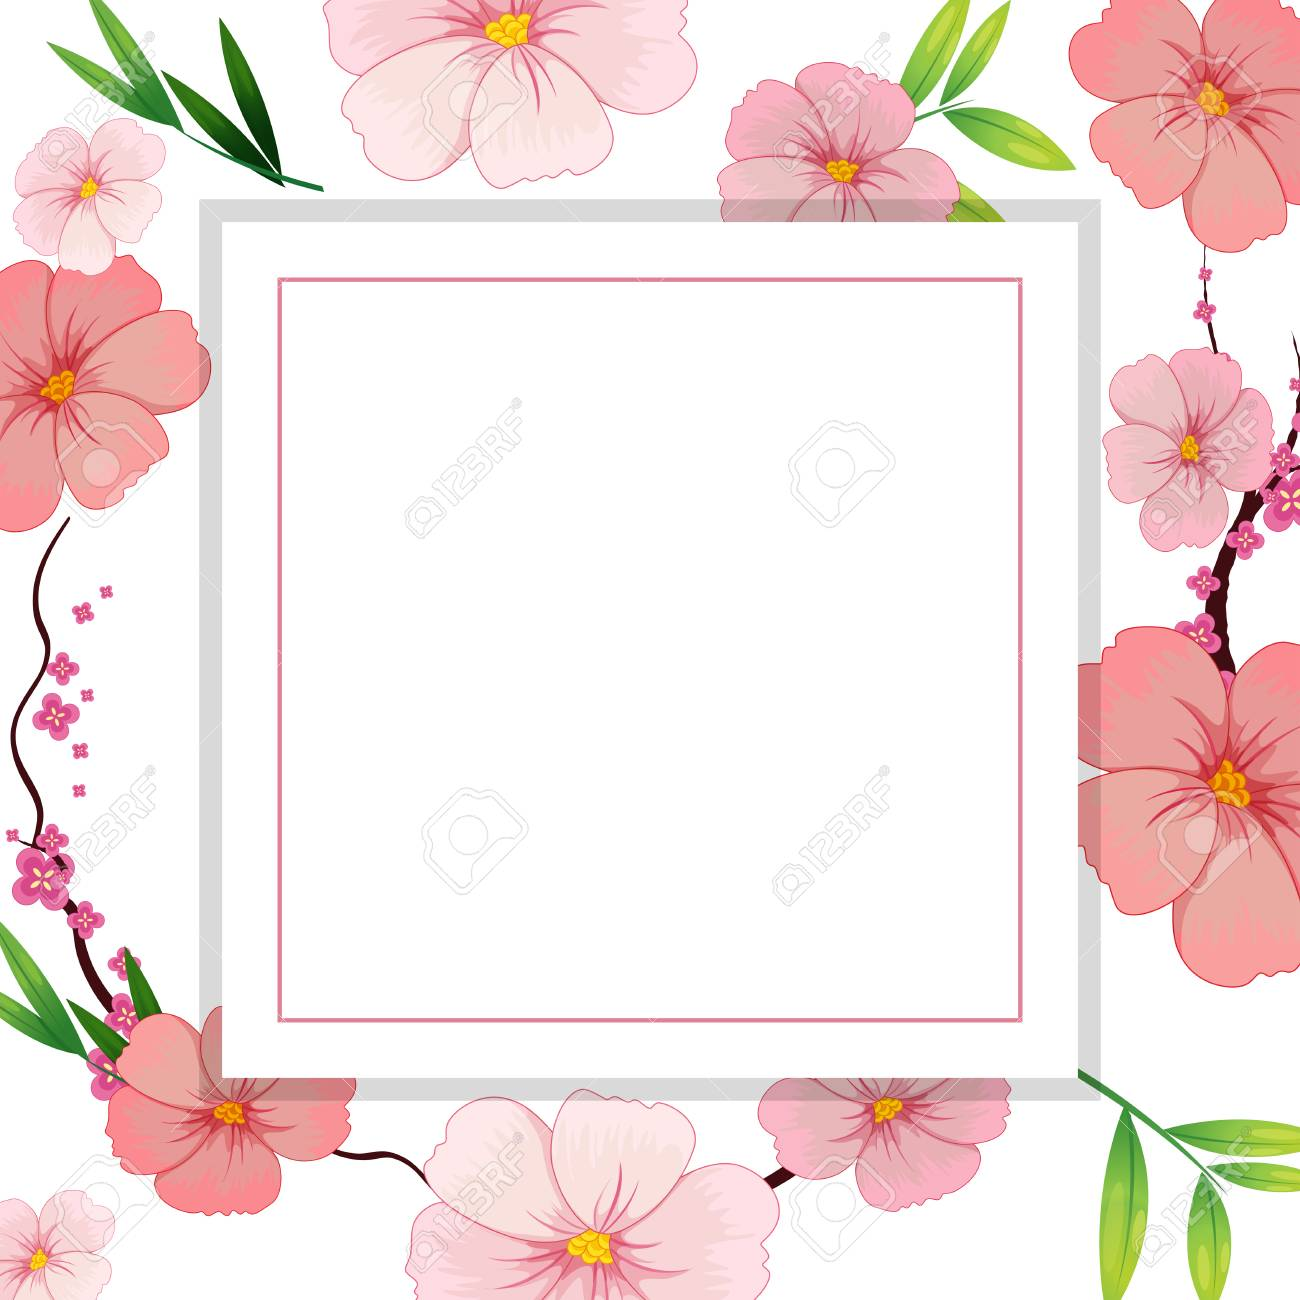 Beautiful Pink Hibiscus Flower Template Illustration Royalty Free